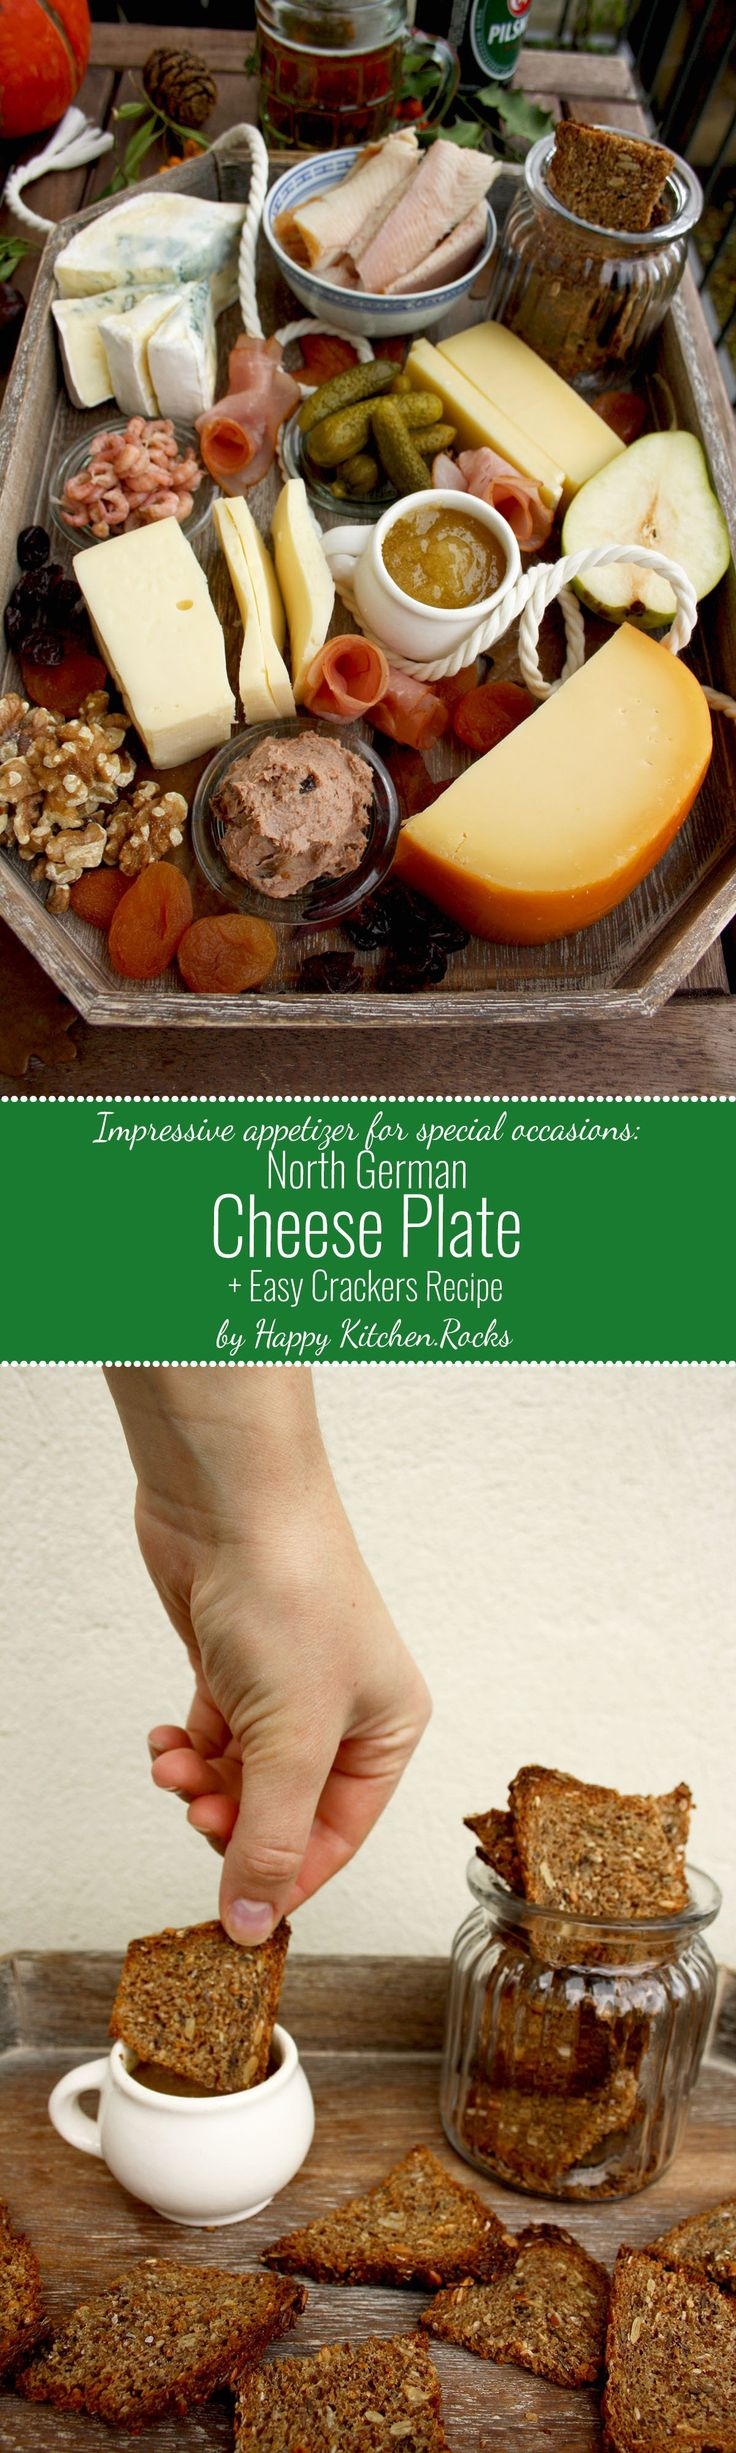 North German Cheese Plate and Easy Crackers Recipe: effortless and impressive appetizers and cheeses, rye crackers, meat, fish, fruit and nuts.(Cheese Table Appetizers)